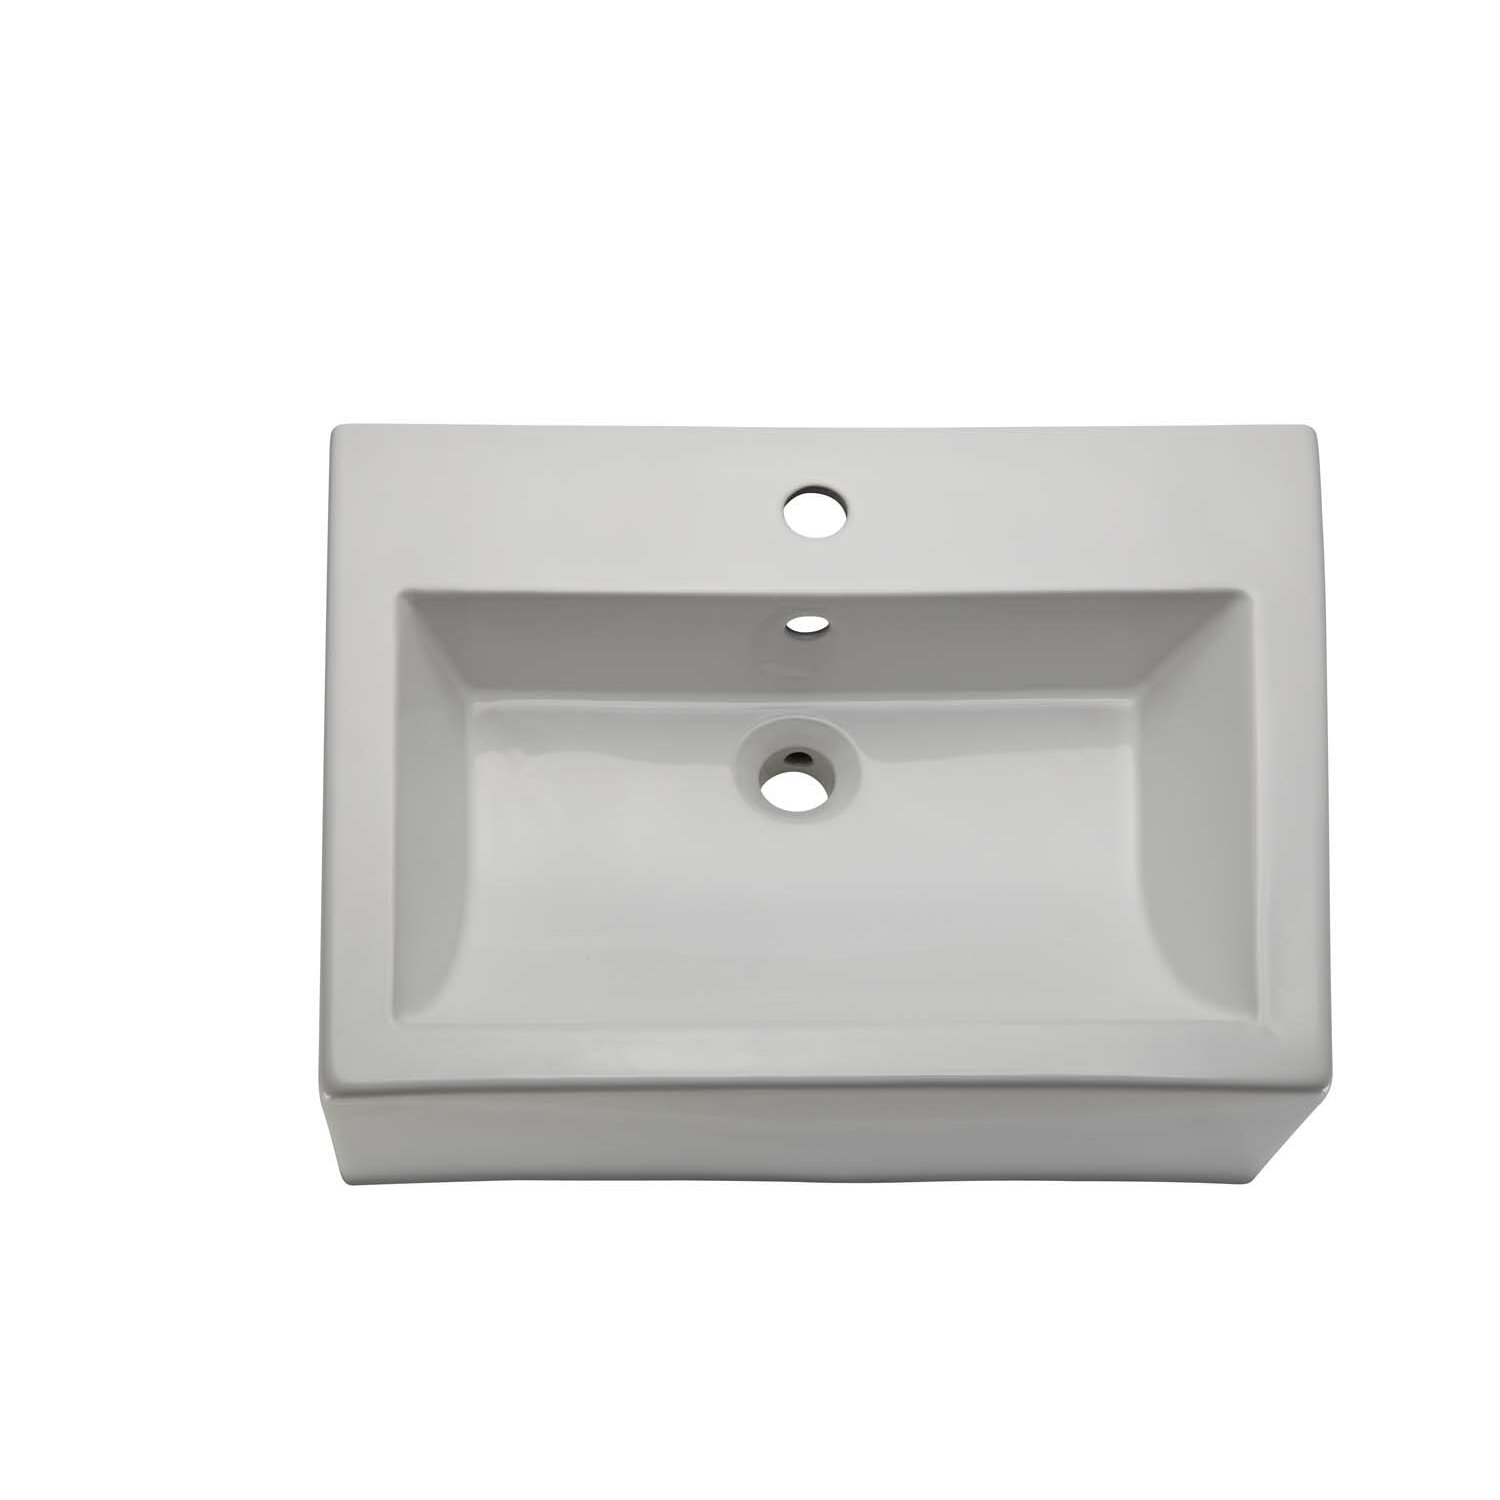 Rectangular Vessel Sink With Overflow : ... Rectangular Ceramic Vessel Bathroom Sink with Overflow by DECOLAV